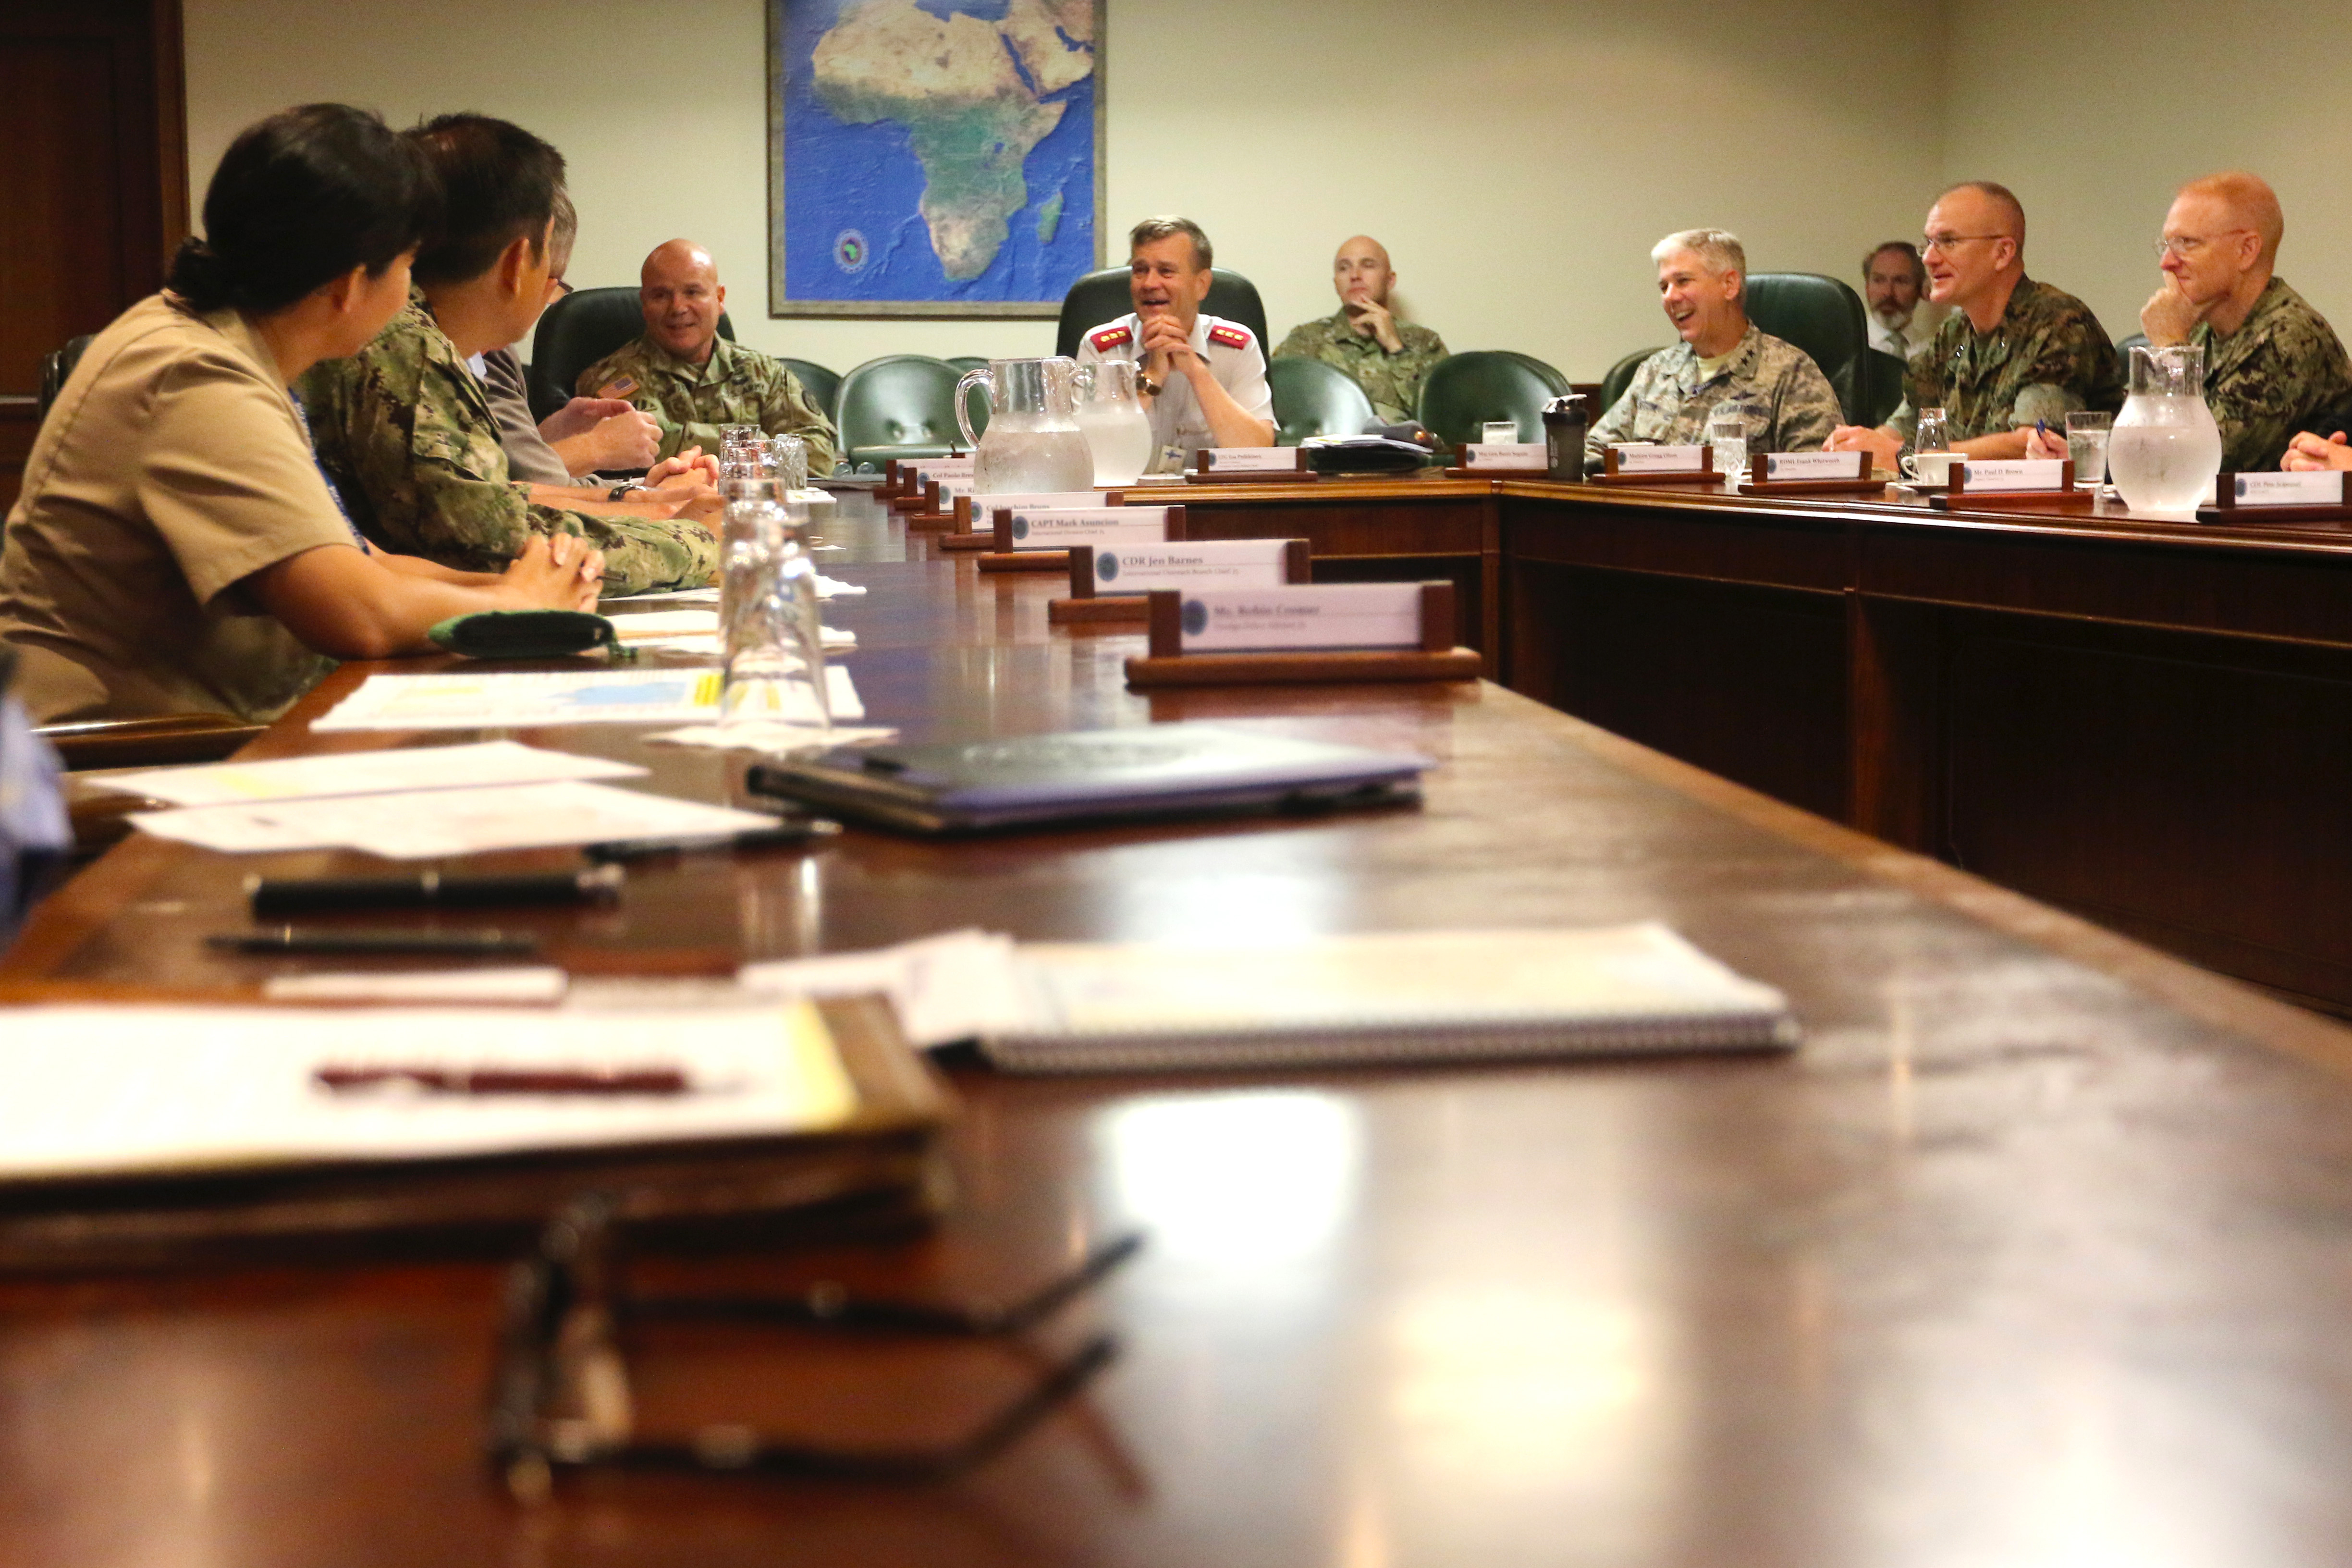 Lt. Gen. Esa Pulkkinen, the Director General of the EU Military Staff and Director of the EU Military Planning and Conduct Capability, participates in a round-table discussion during a visit to U.S. Africa Command headquarters in Stuttgart, Germany Aug. 24.